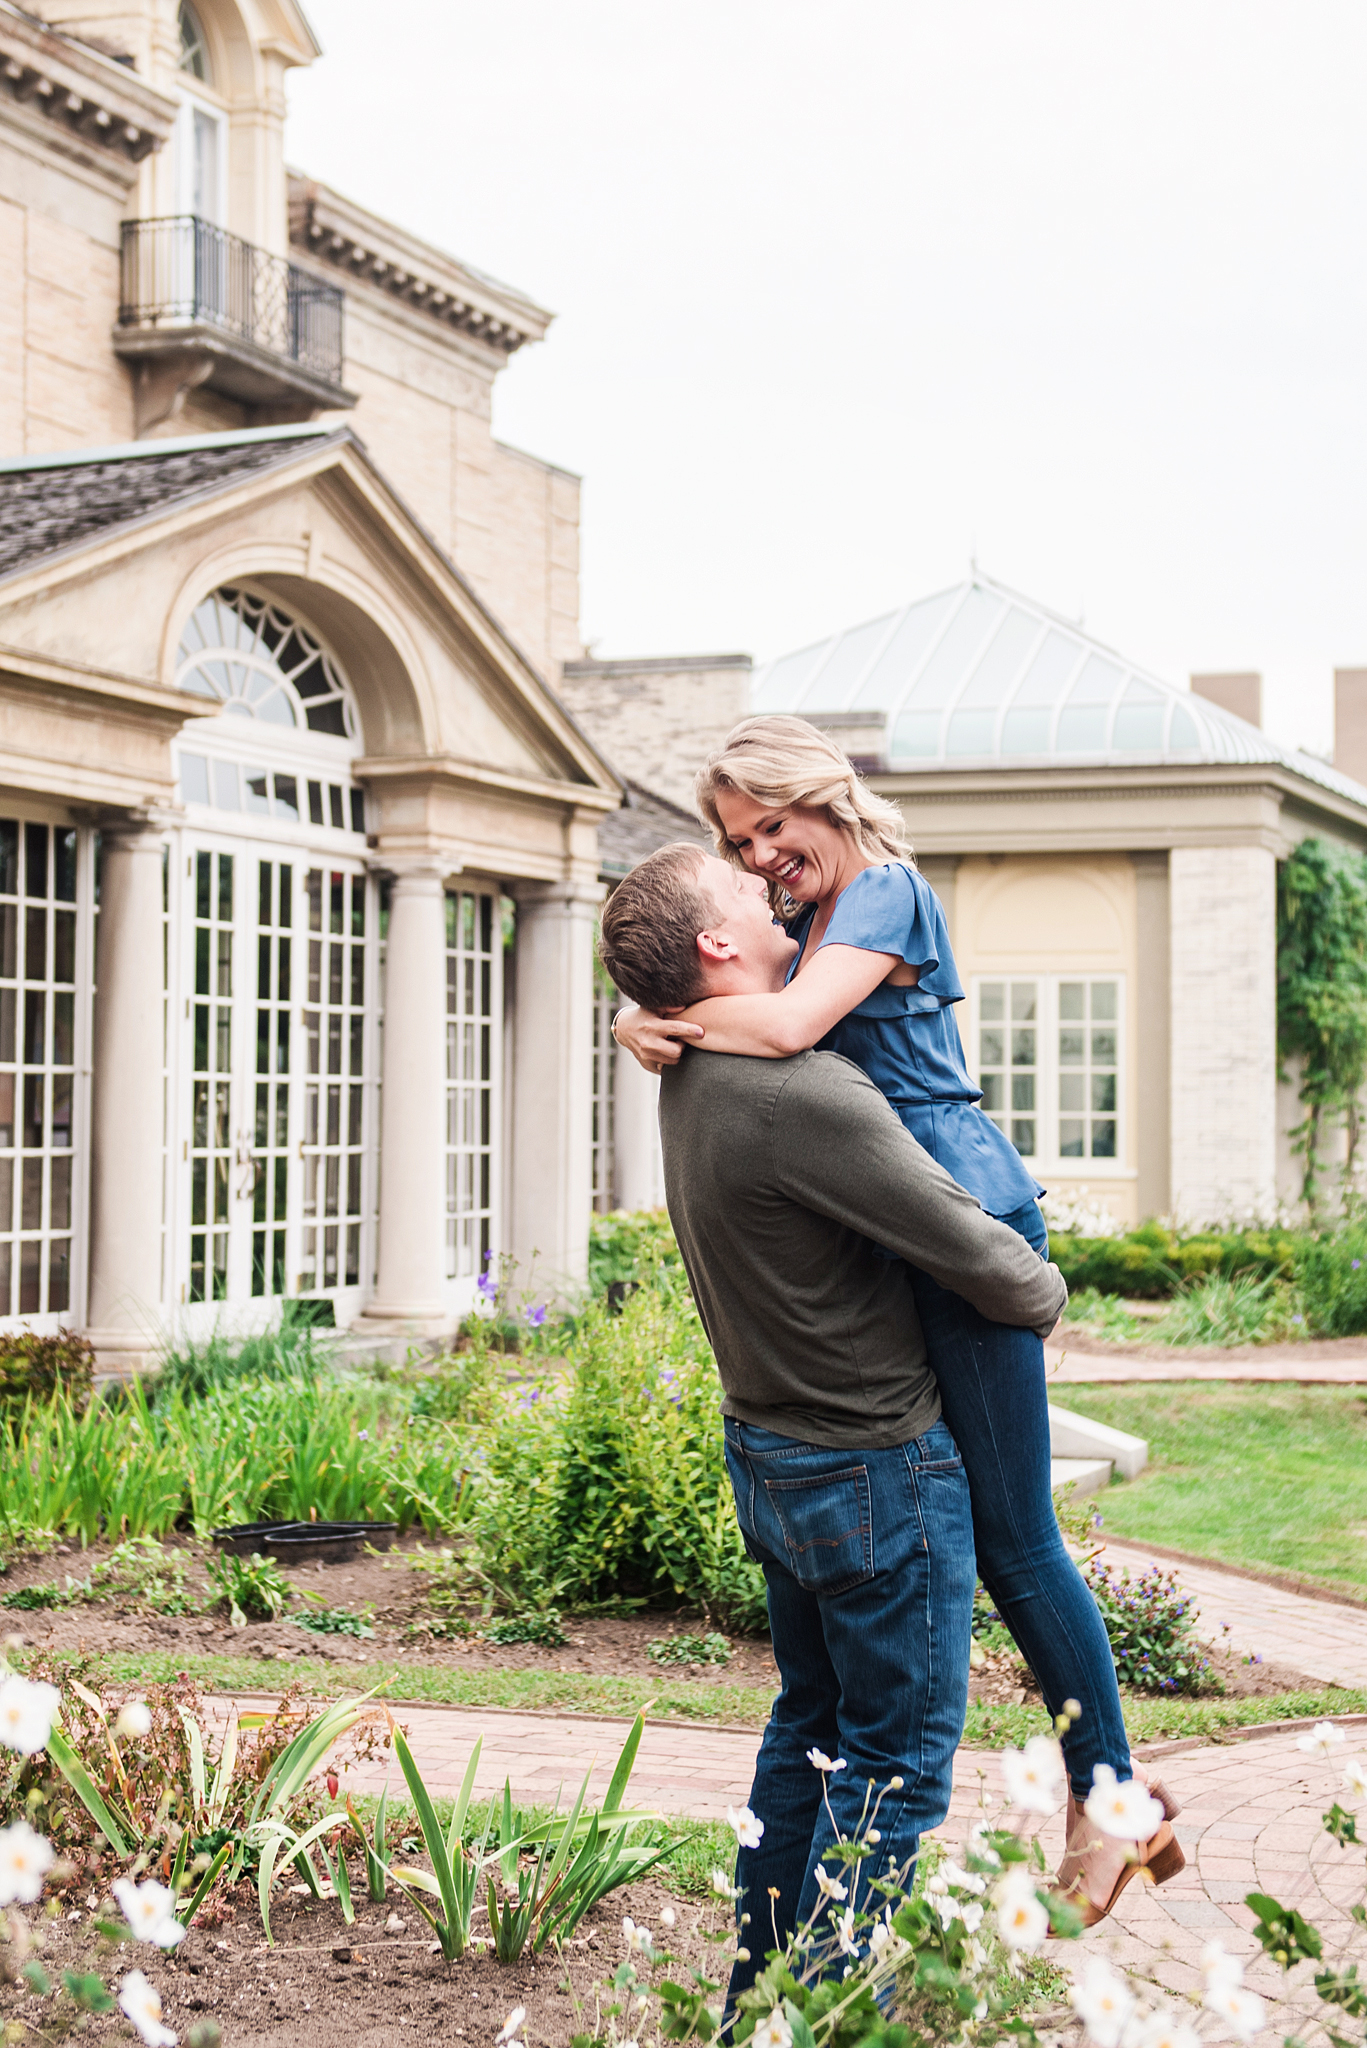 George_Eastman_House_Rochester_Yacht_Club_Rochester_Engagement_Session_JILL_STUDIO_Rochester_NY_Photographer_DSC_8061.jpg